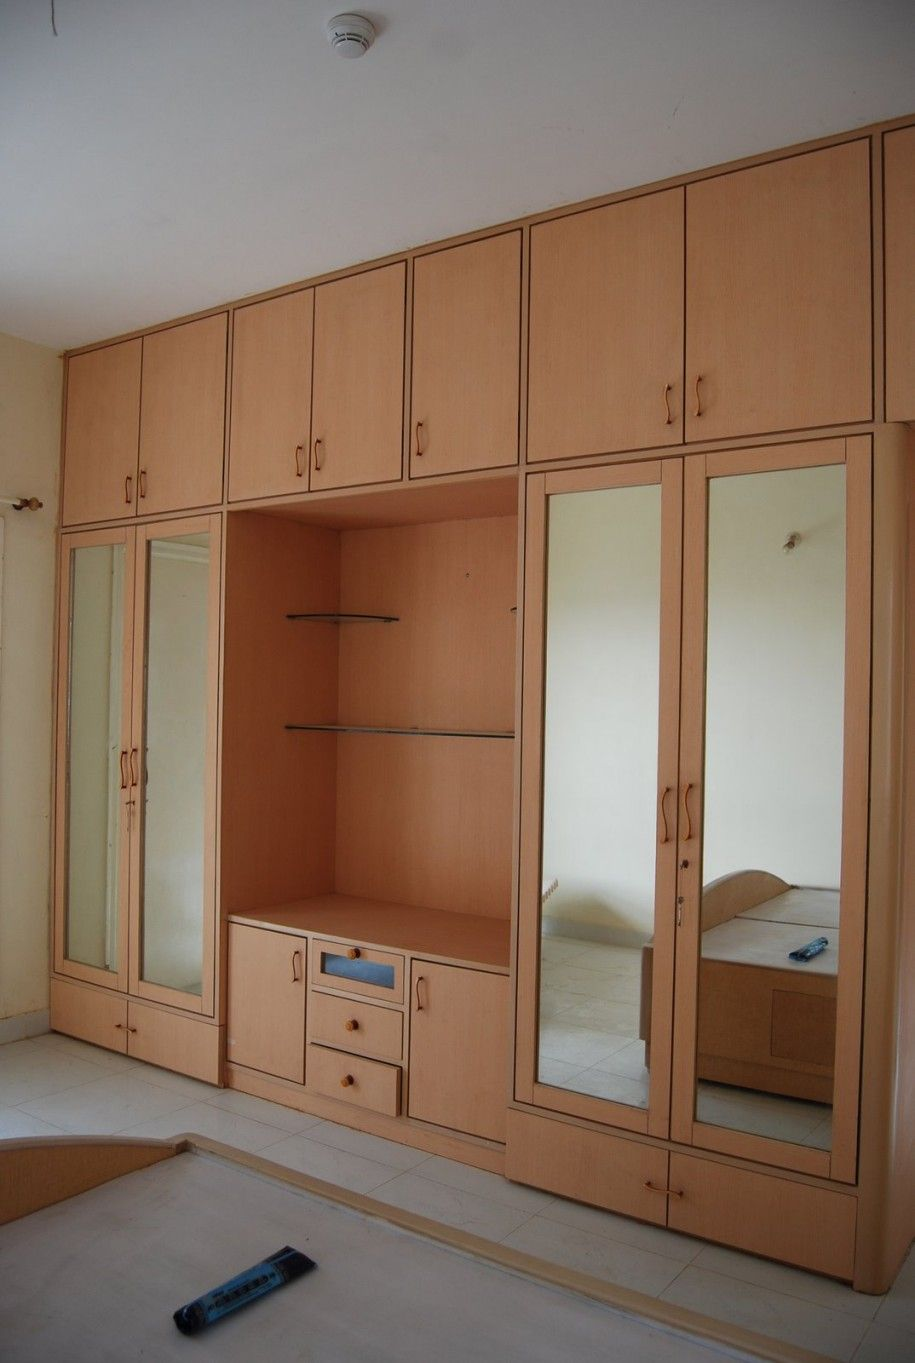 Built In Wardrobe Around Bed  Google Search  Furniture Ideas Adorable Latest Almirah Designs Bedroom Design Decoration